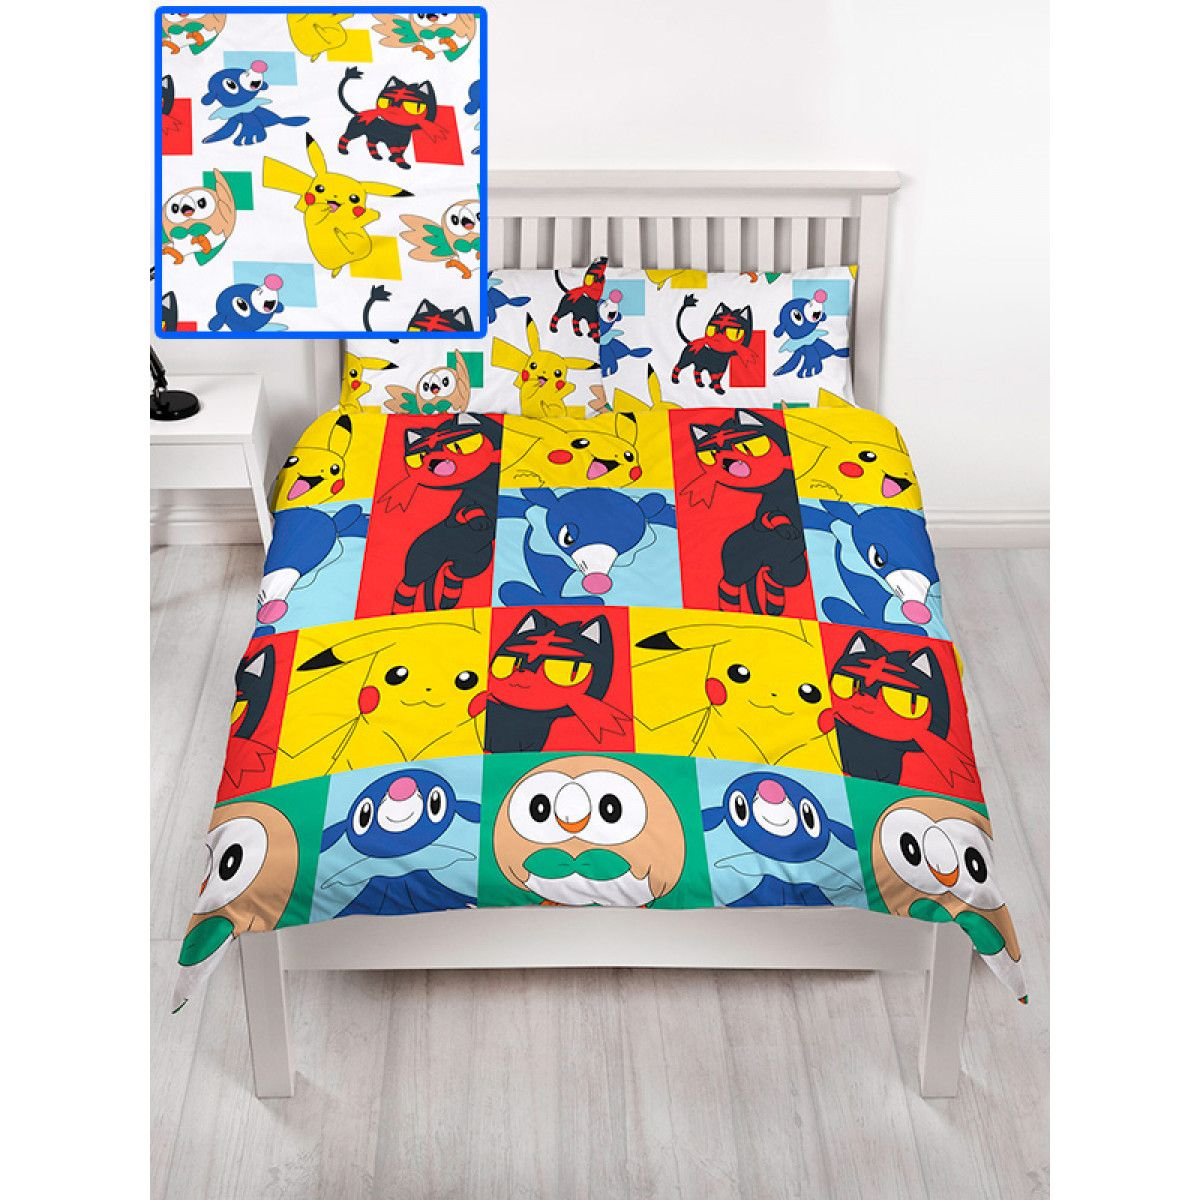 17+ Anime bed covers uk inspirations